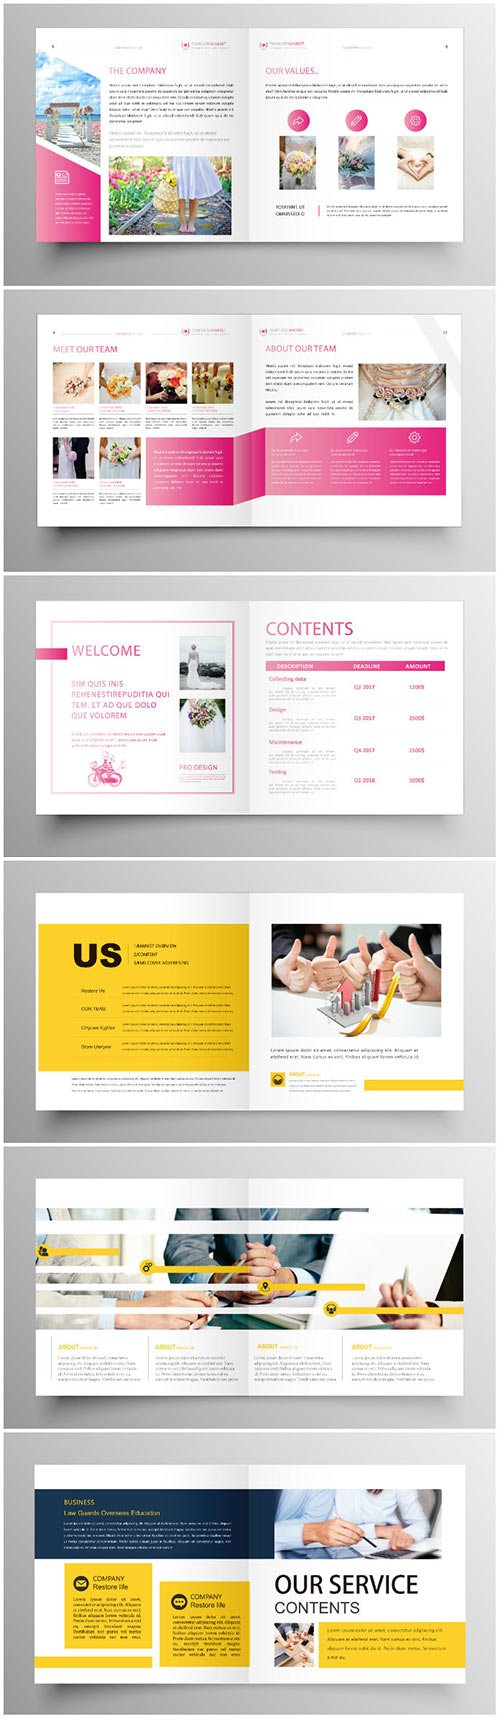 Brochure template vector layout design, corporate business annual report, magazine, flyer mockup # 205